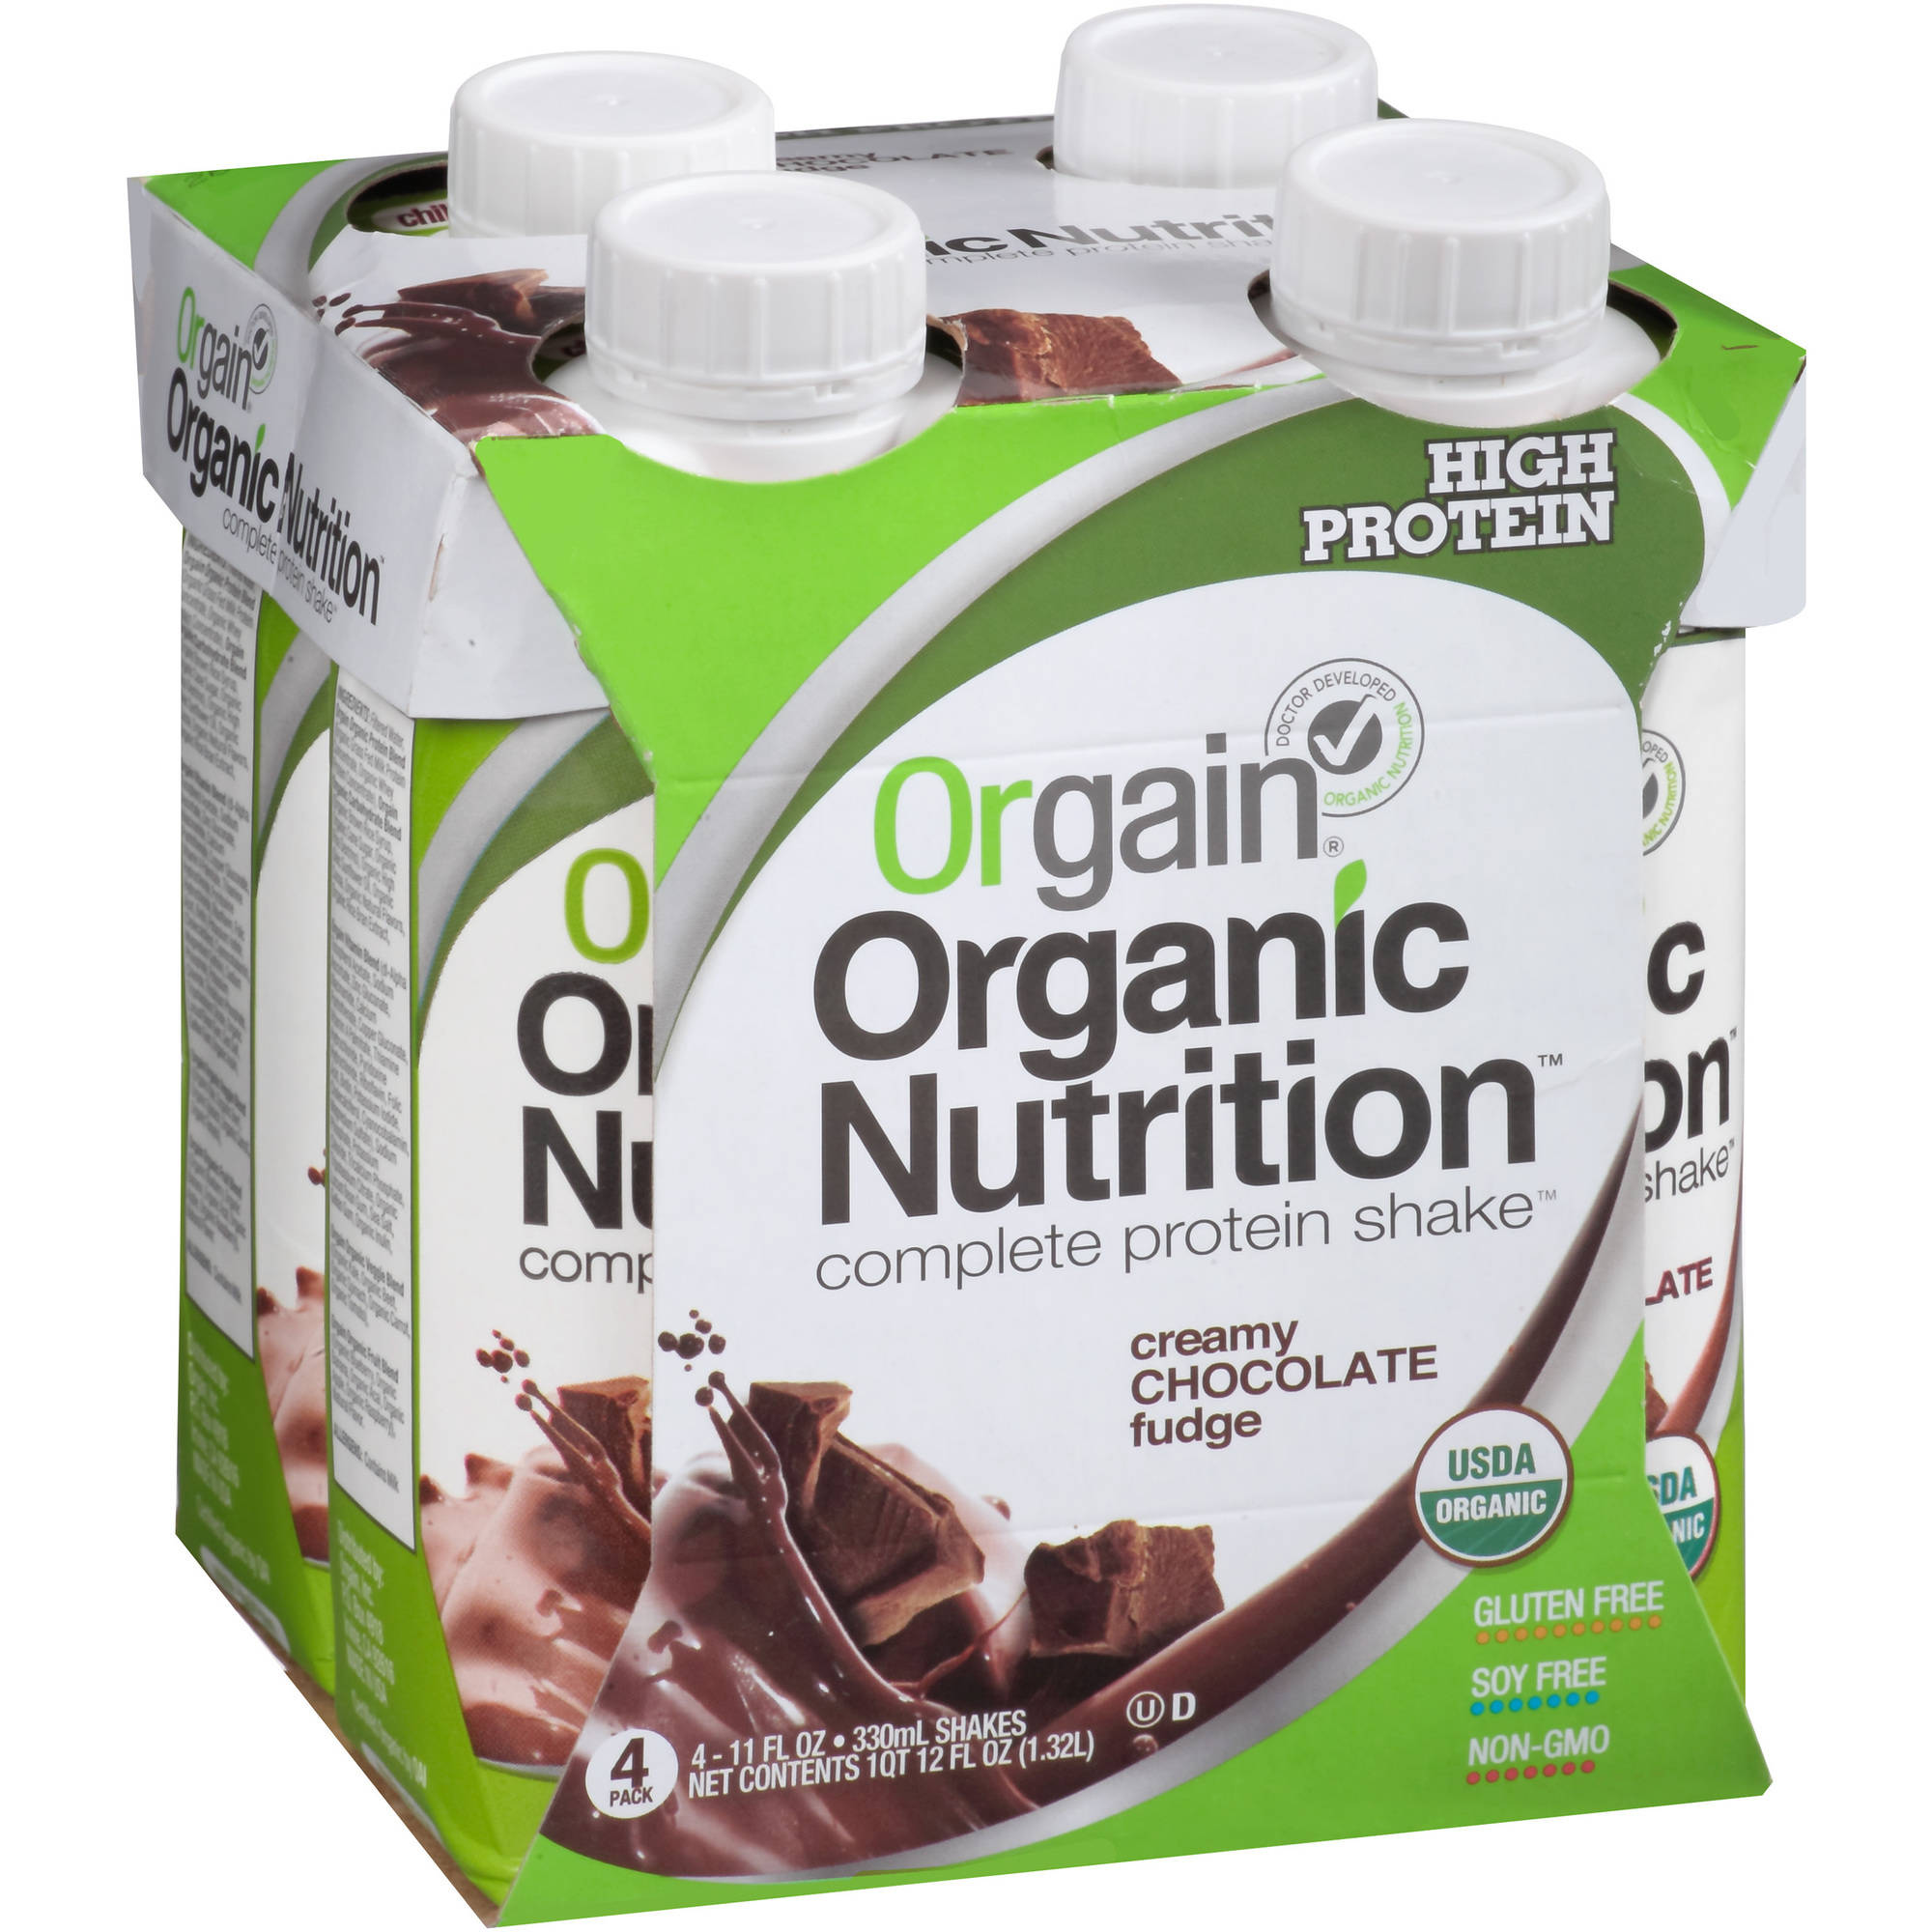 Orgain Organic Nutrition Creamy Chocolate Fudge Complete Protein Shake, 11 fl oz, (Pack of 4)